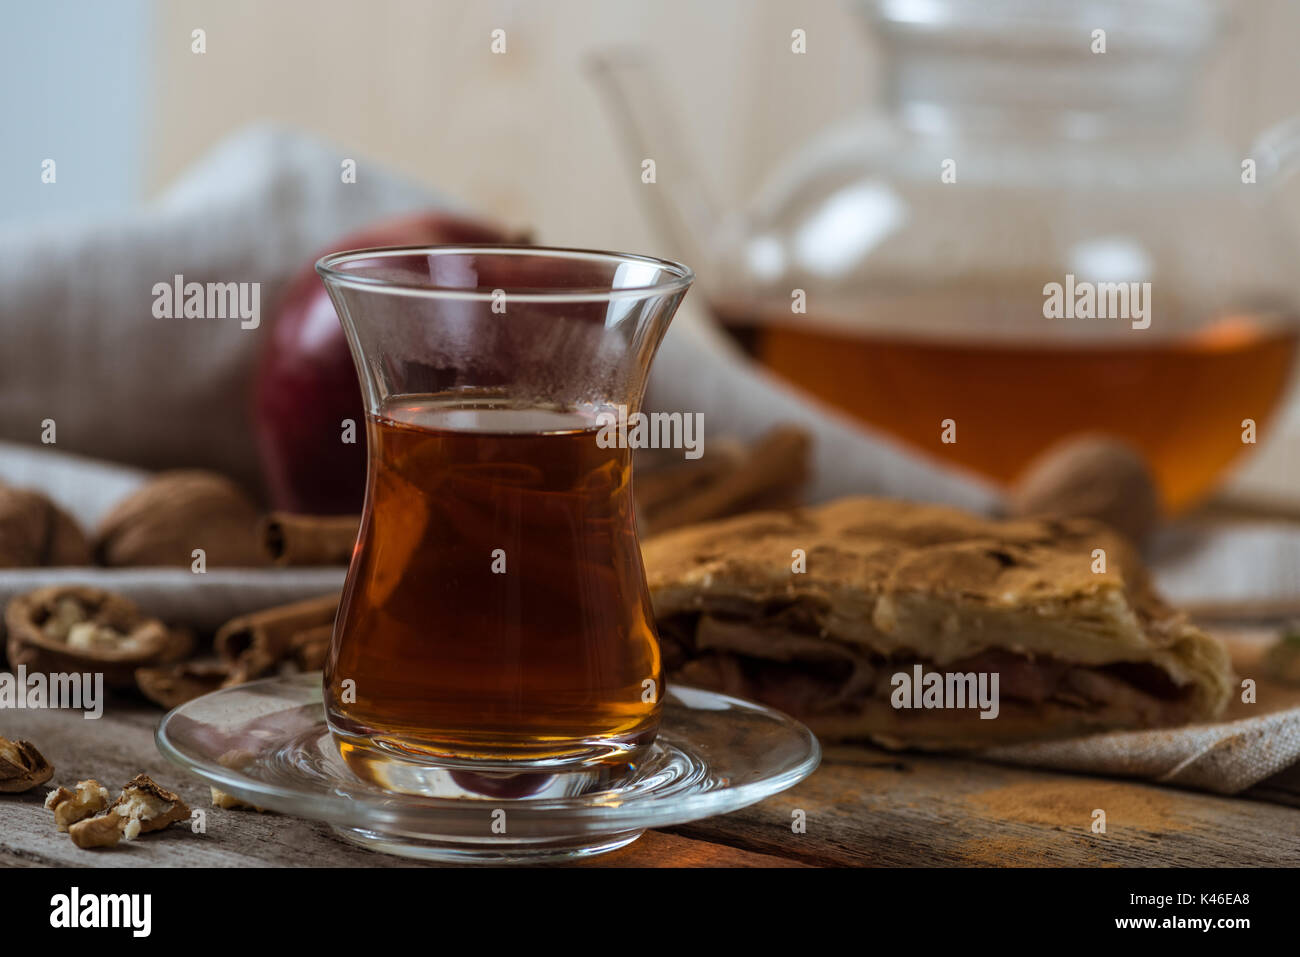 hot tea in glass cup and homemade apple pie with walnuts on rustic wooden tabletop - Stock Image